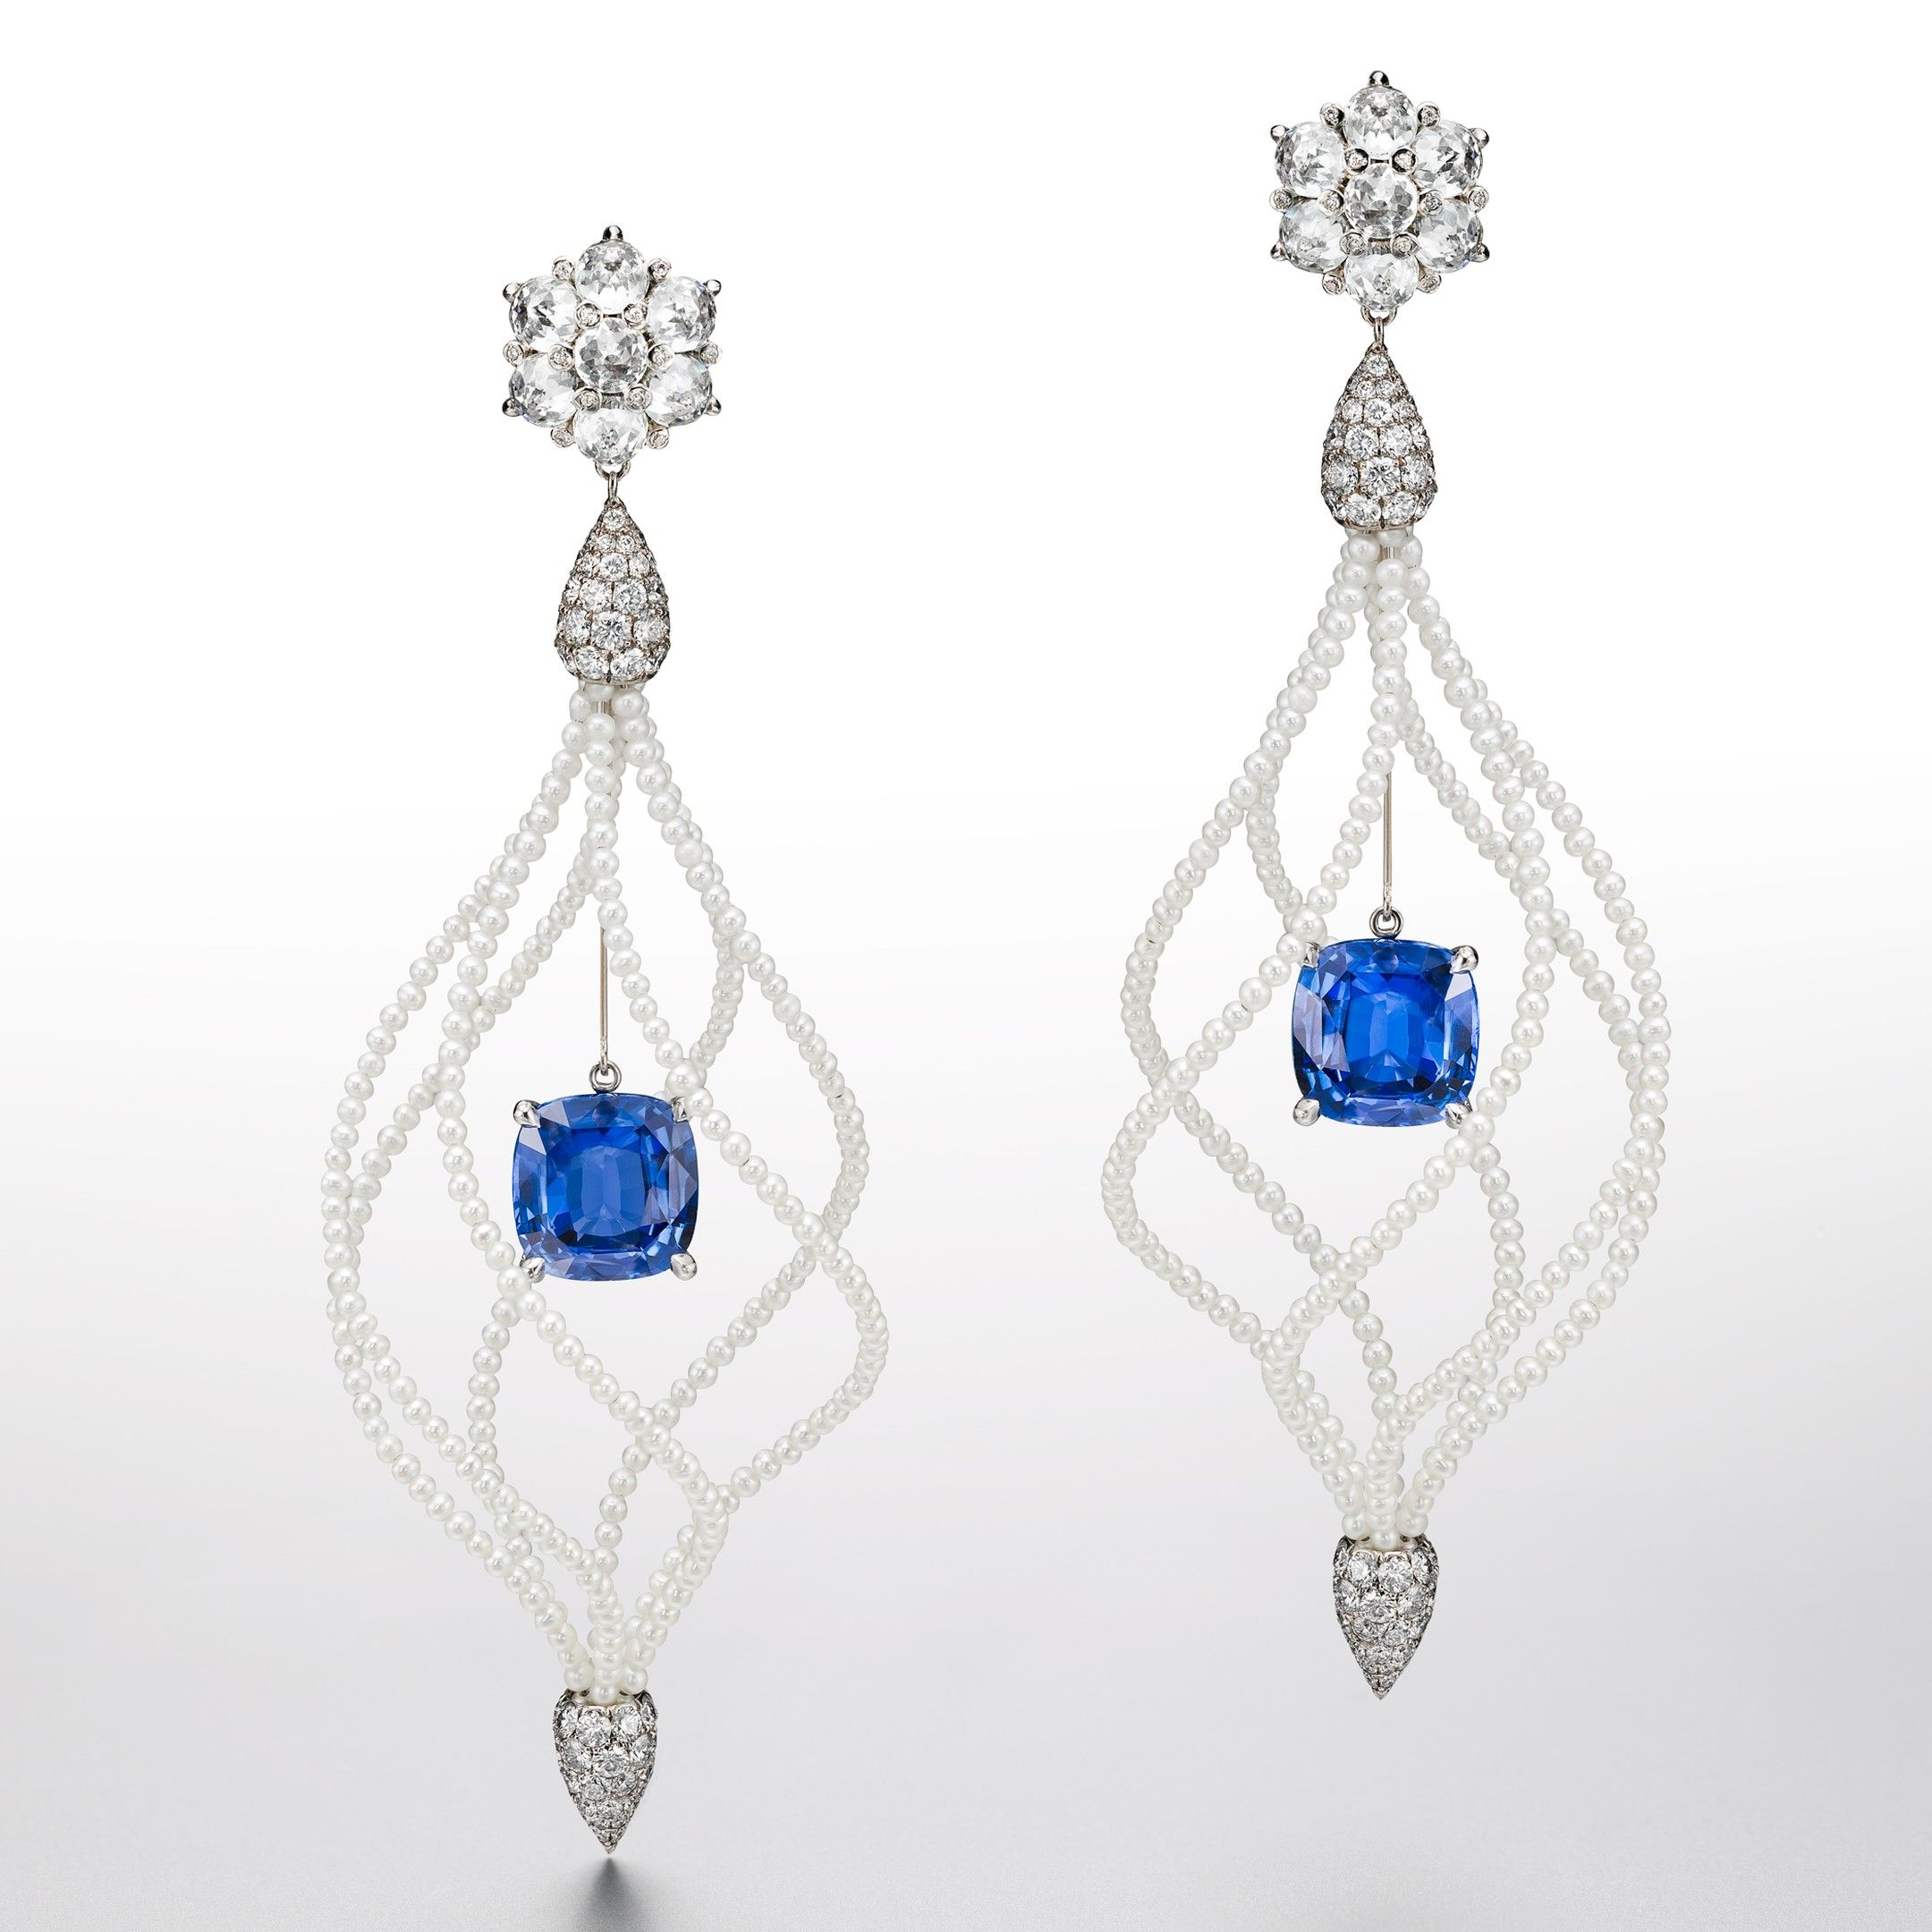 Suzanne Syz Lady Hamilton earrings in white gold and titanium set with Ceylan sapphires, domed crown diamonds and pearls. Courtesy of Suzanne Syz.